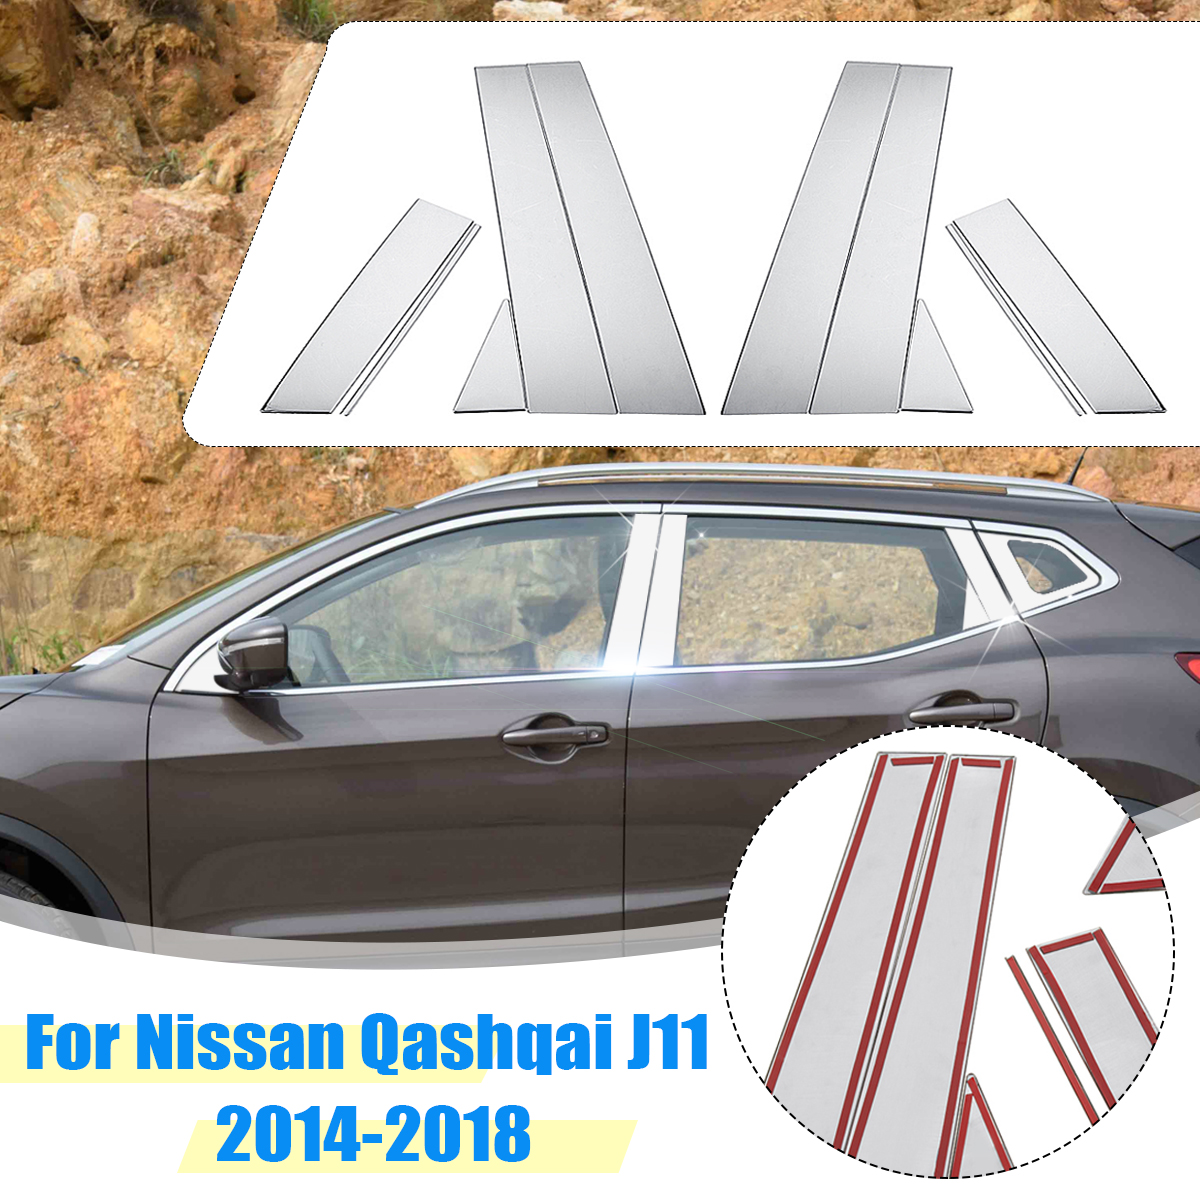 Car Window Pillar Center Trim Stainless Steel Sticker Decoration <font><b>Accessories</b></font> for <font><b>Nissan</b></font> <font><b>Qashqai</b></font> J11 2014 2015 <font><b>2016</b></font> 2017 2018 image